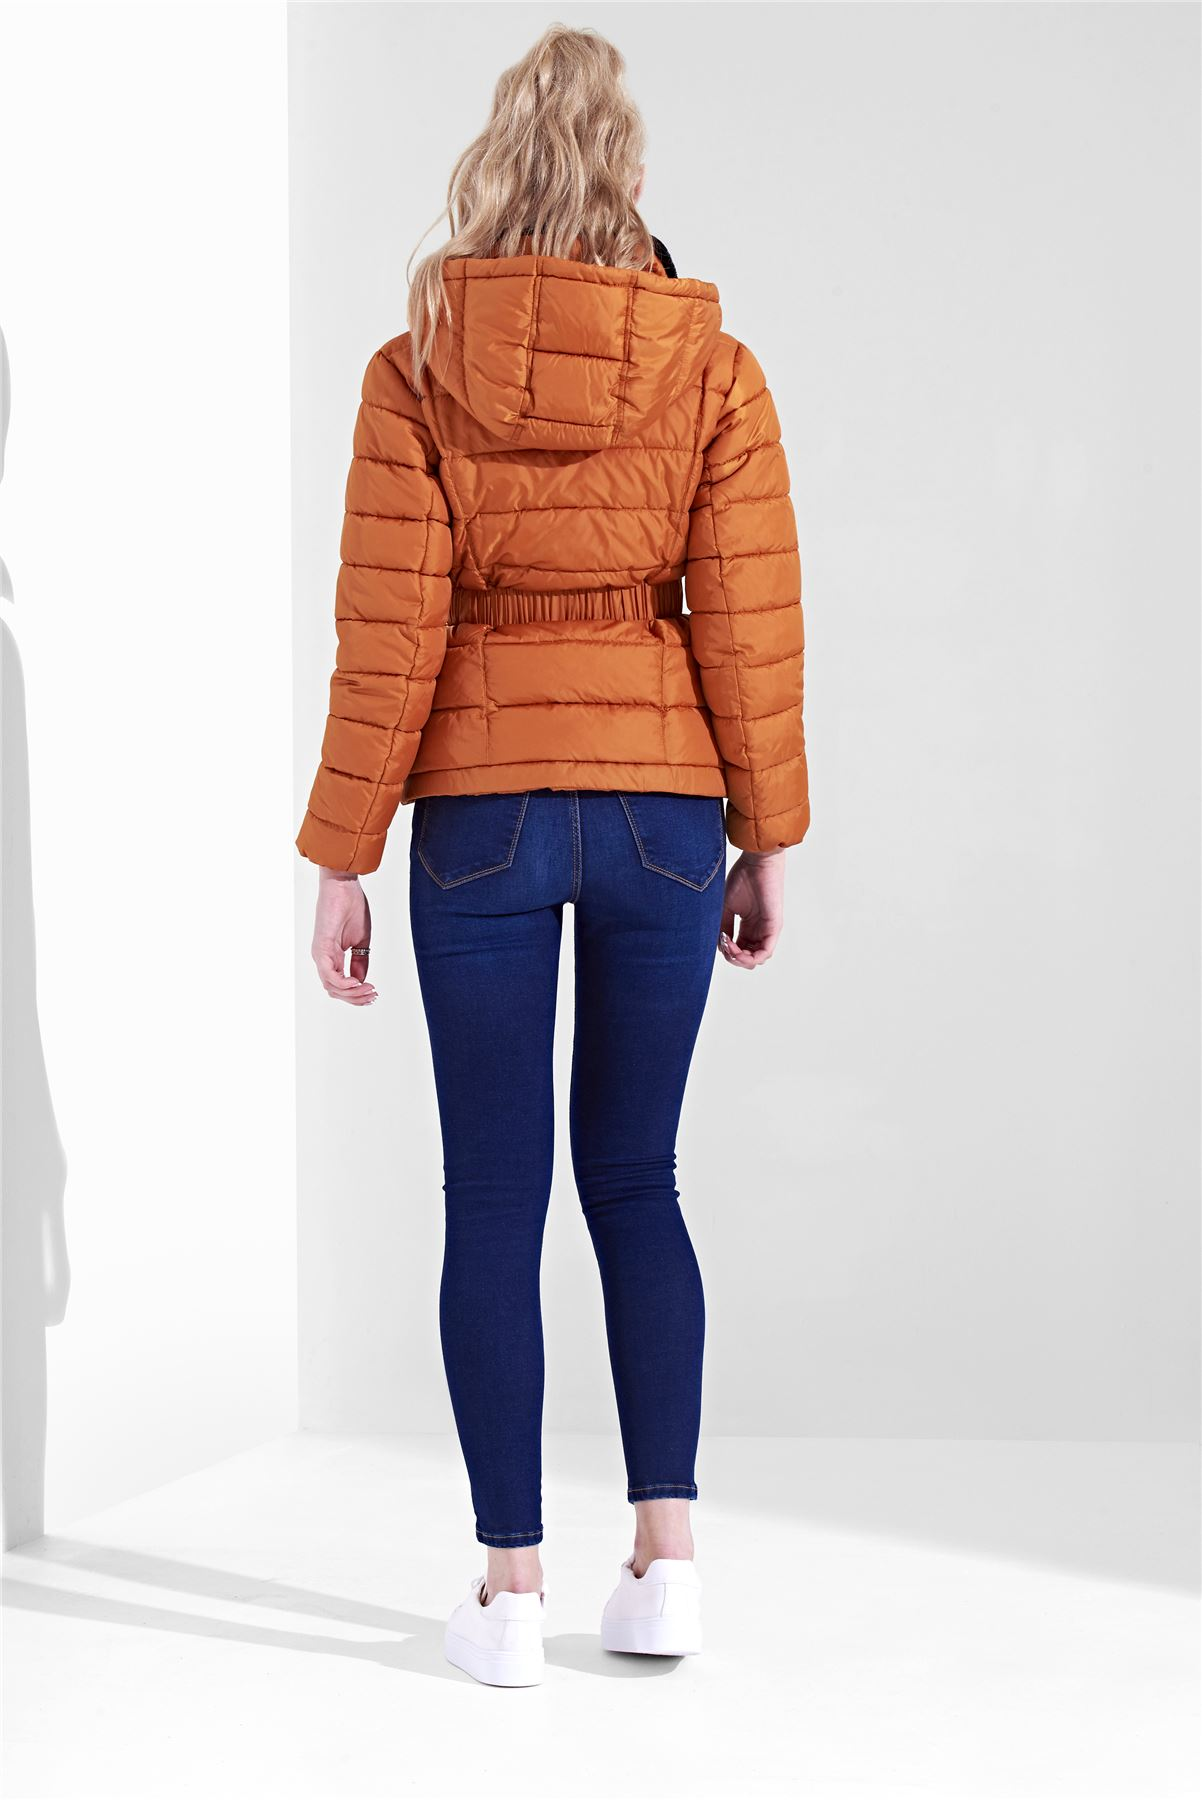 Womens-Ladies-Black-Hood-Belted-Fur-Collar-Zip-Up-Quilted-Puffer-Jacket-Coat thumbnail 7